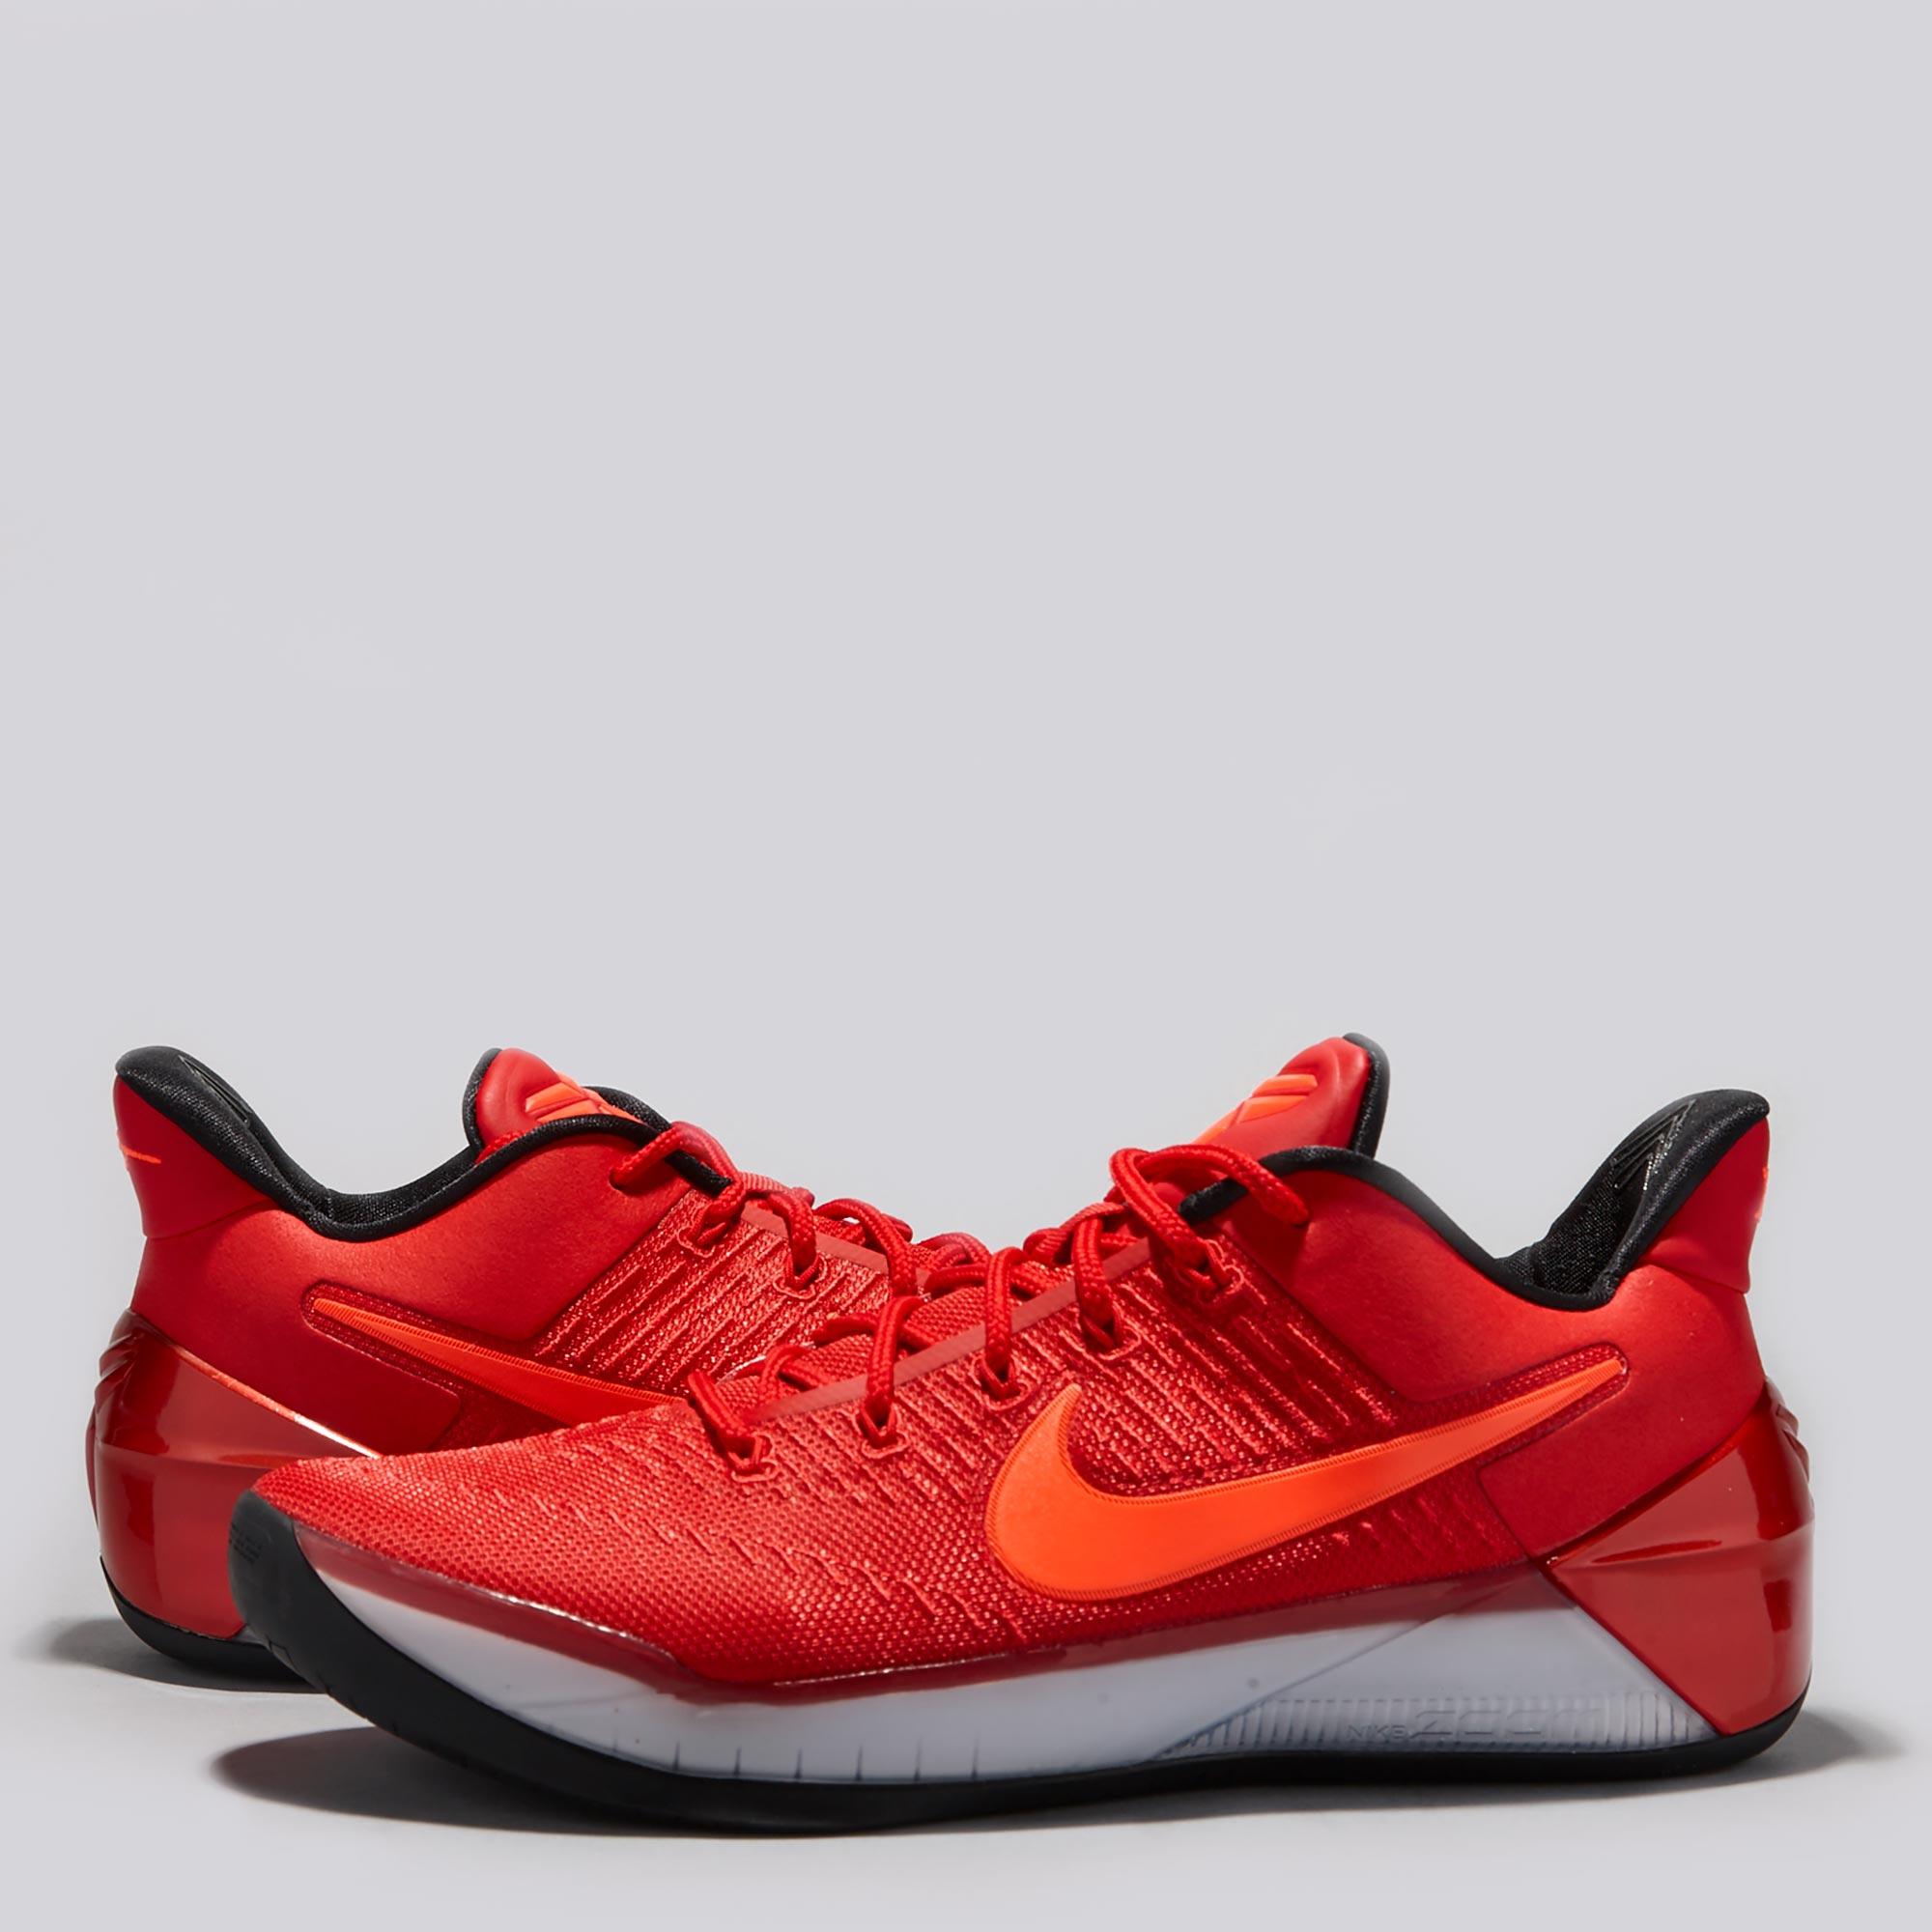 Nike Kobe XII Basketball Shoe - Uni Red/Black